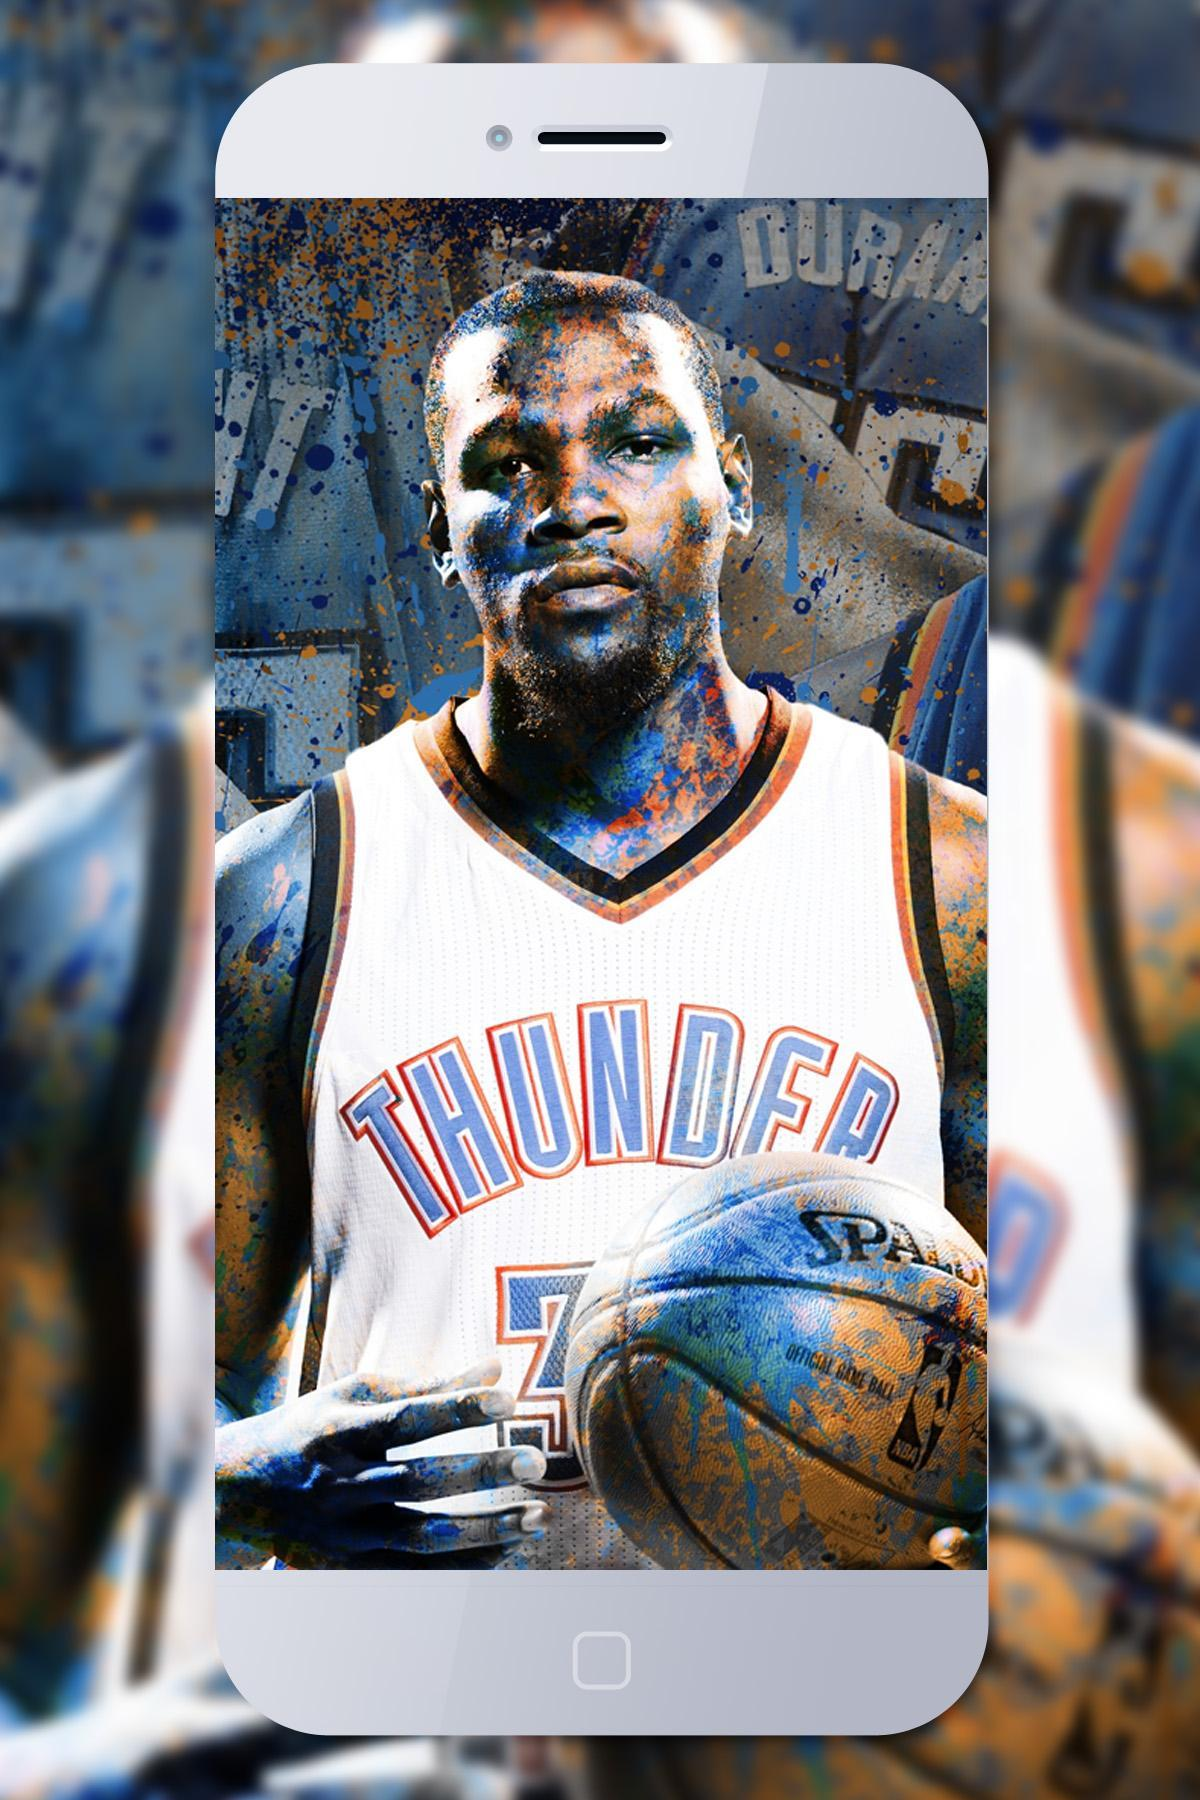 Kevin Durant Wallpaper Fans Hd For Android Apk Download